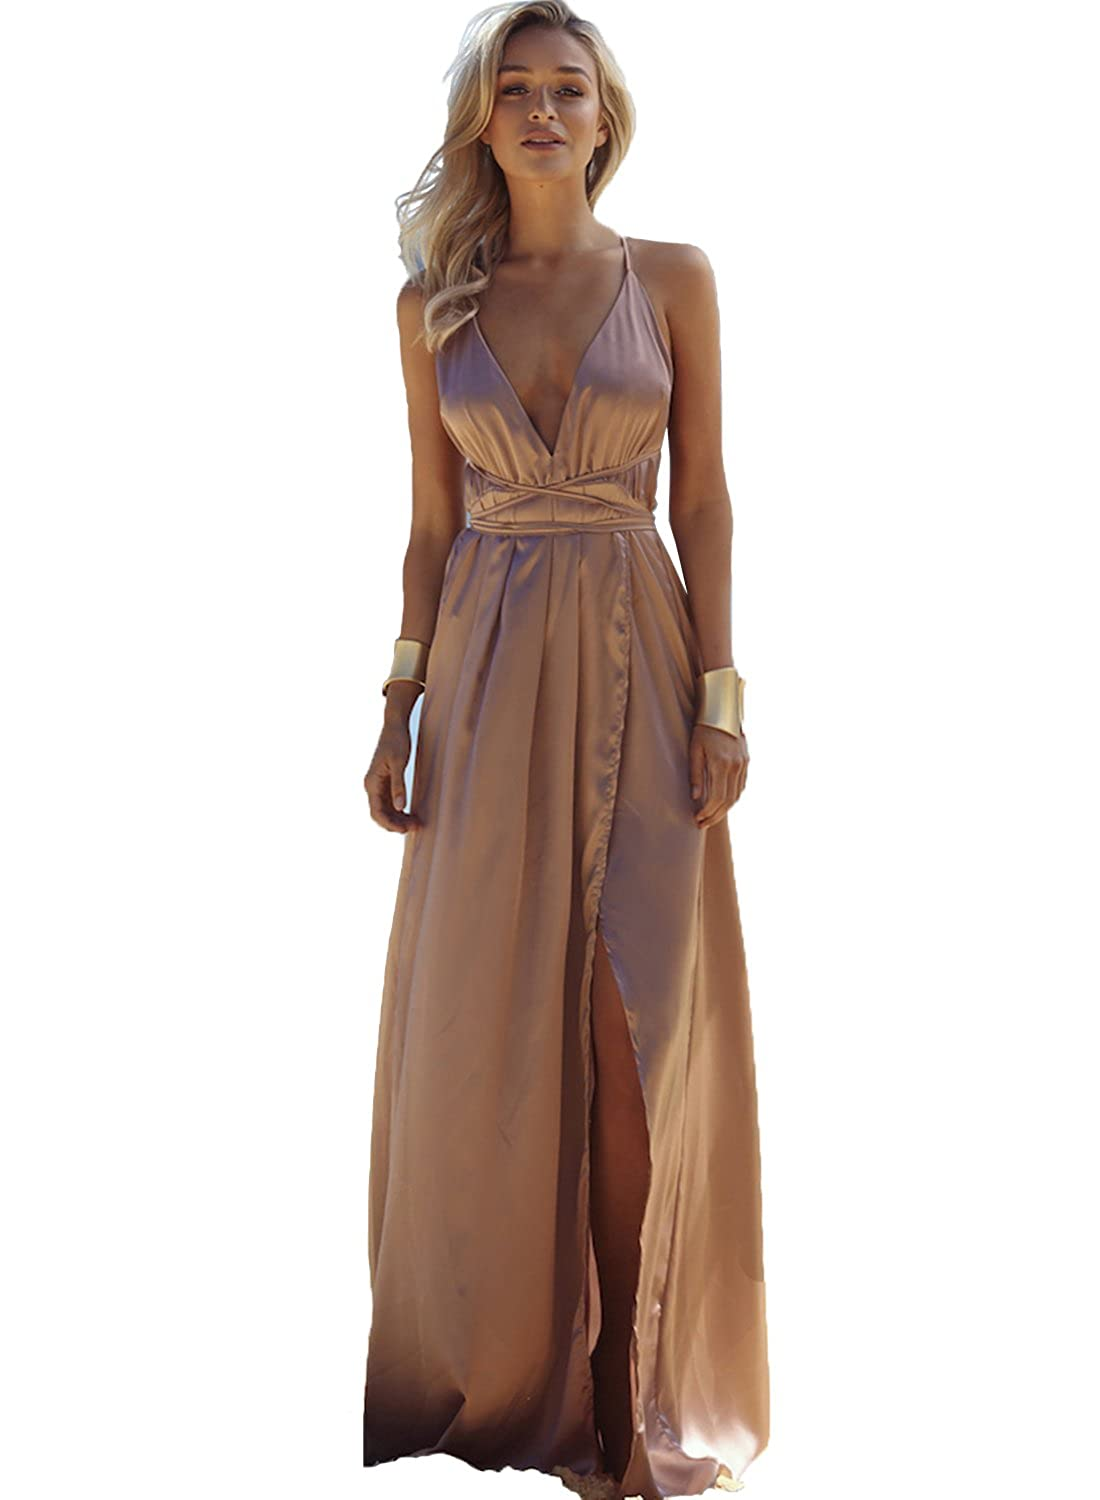 Yahmet Womens Pink Prom Dresses Long Cheap Maxi Dress Sexy Evening Gown Cheap 2017 at Amazon Womens Clothing store: